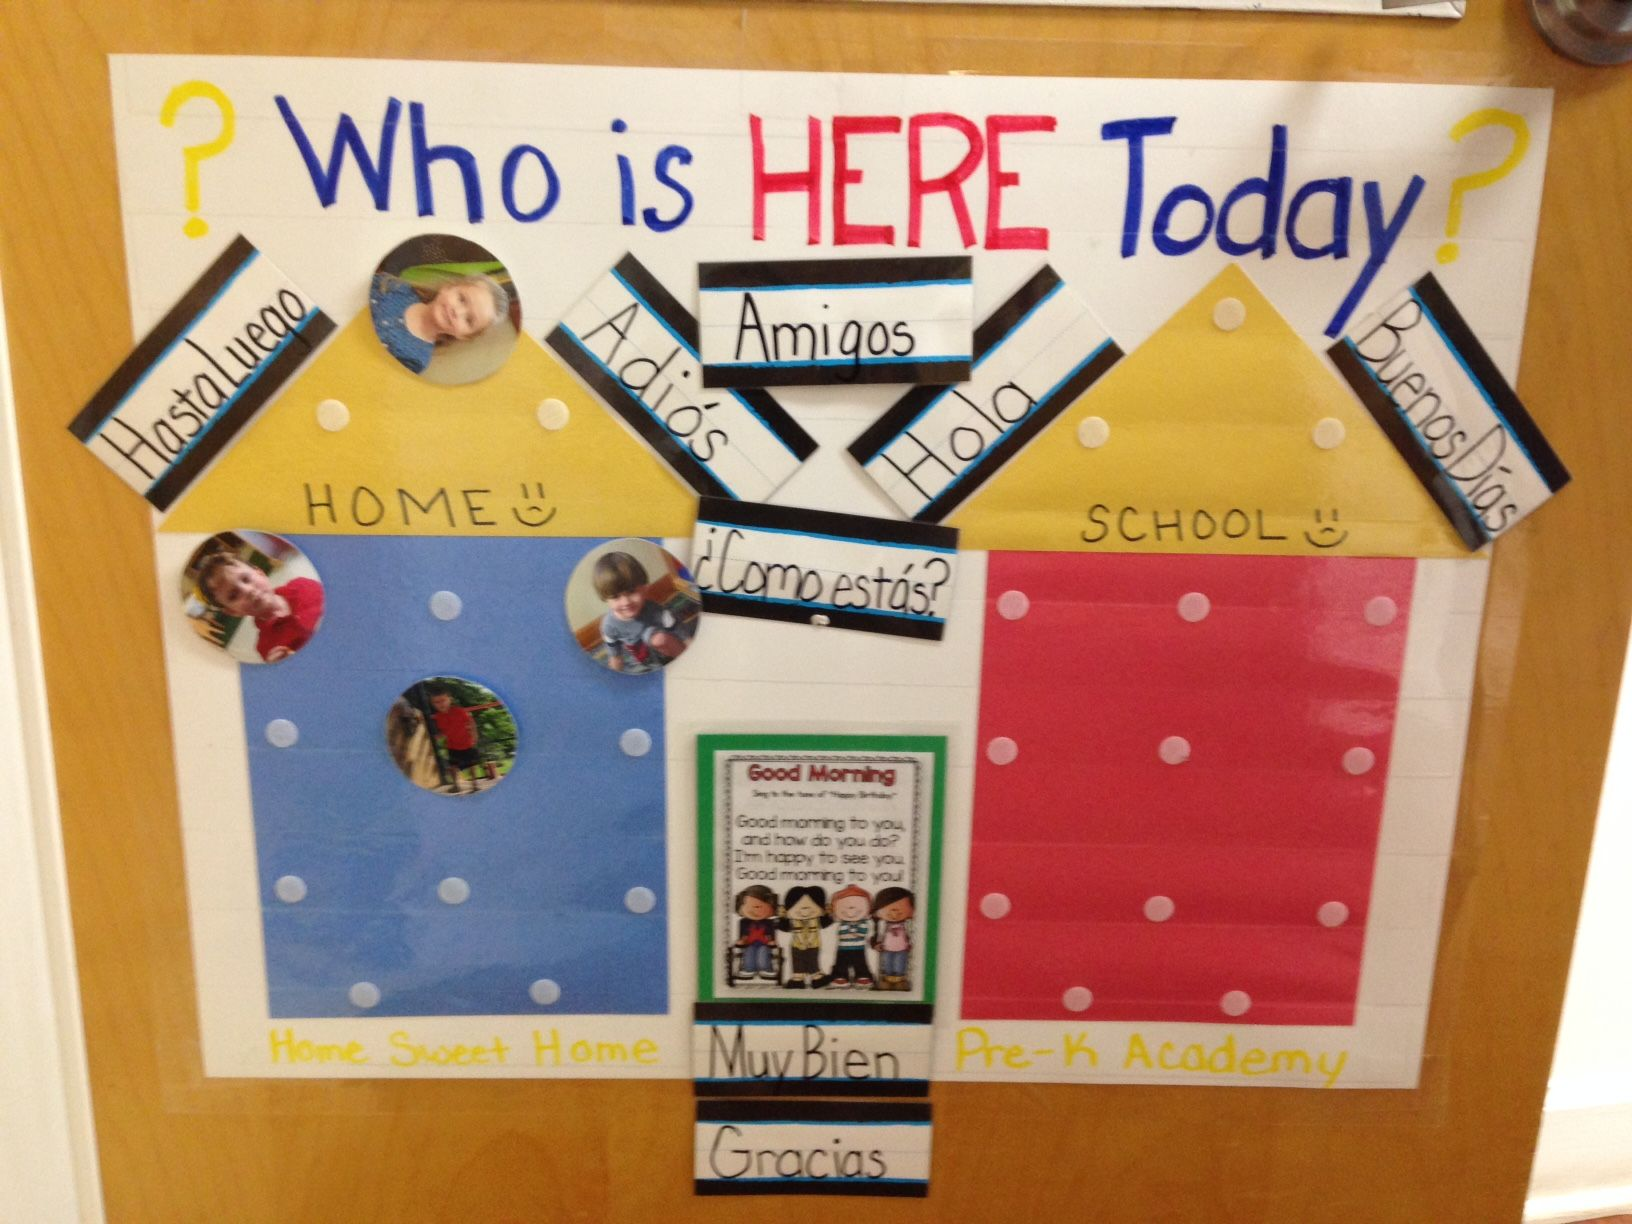 A wonderful idea for a check in board great use of the